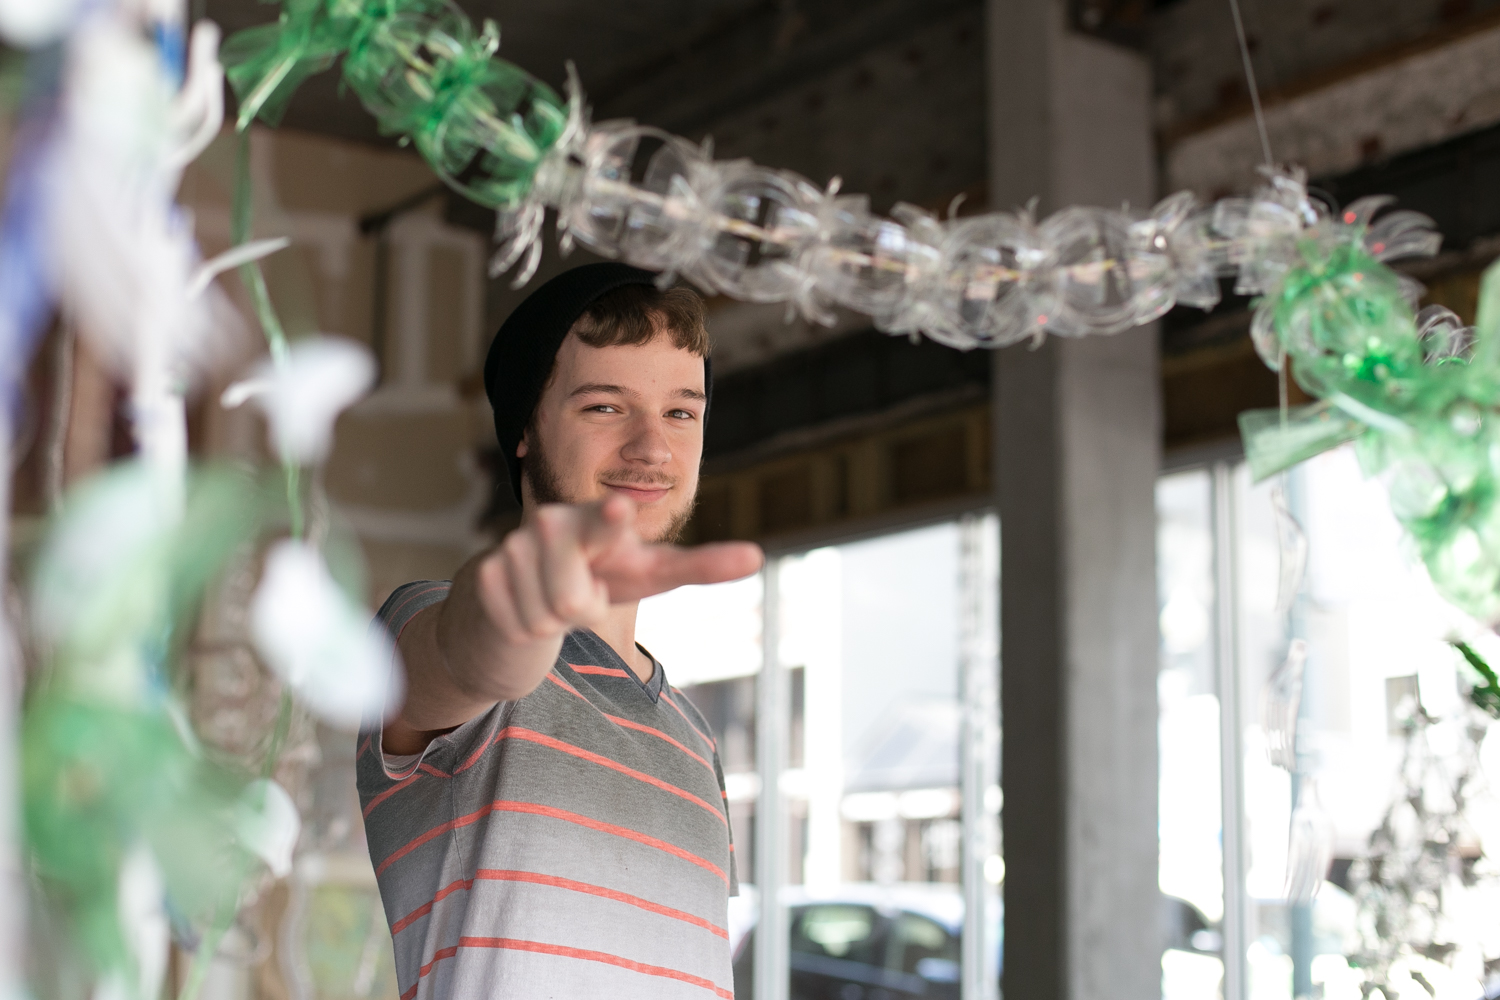 Tyler is an architecture student at the University of Memphis. He built a giant sculpture with his classmates out of recycled bottles and plastic forks.